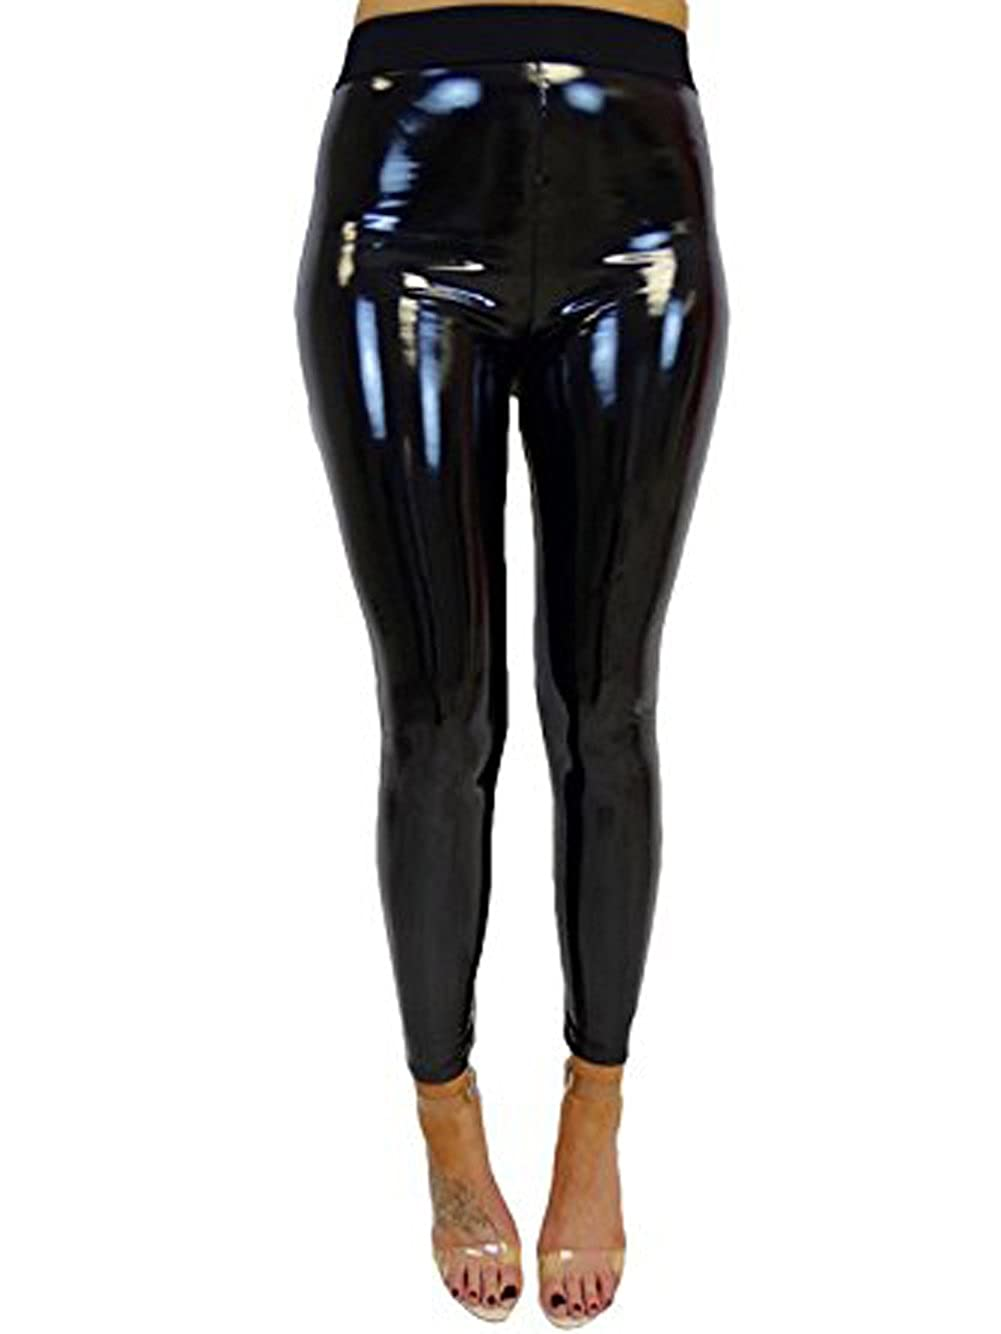 53511f3eb05a2c Women's Faux Leather Wet Look Shiny Metallic High Waist Legging Pants  Trousers at Amazon Women's Clothing store: